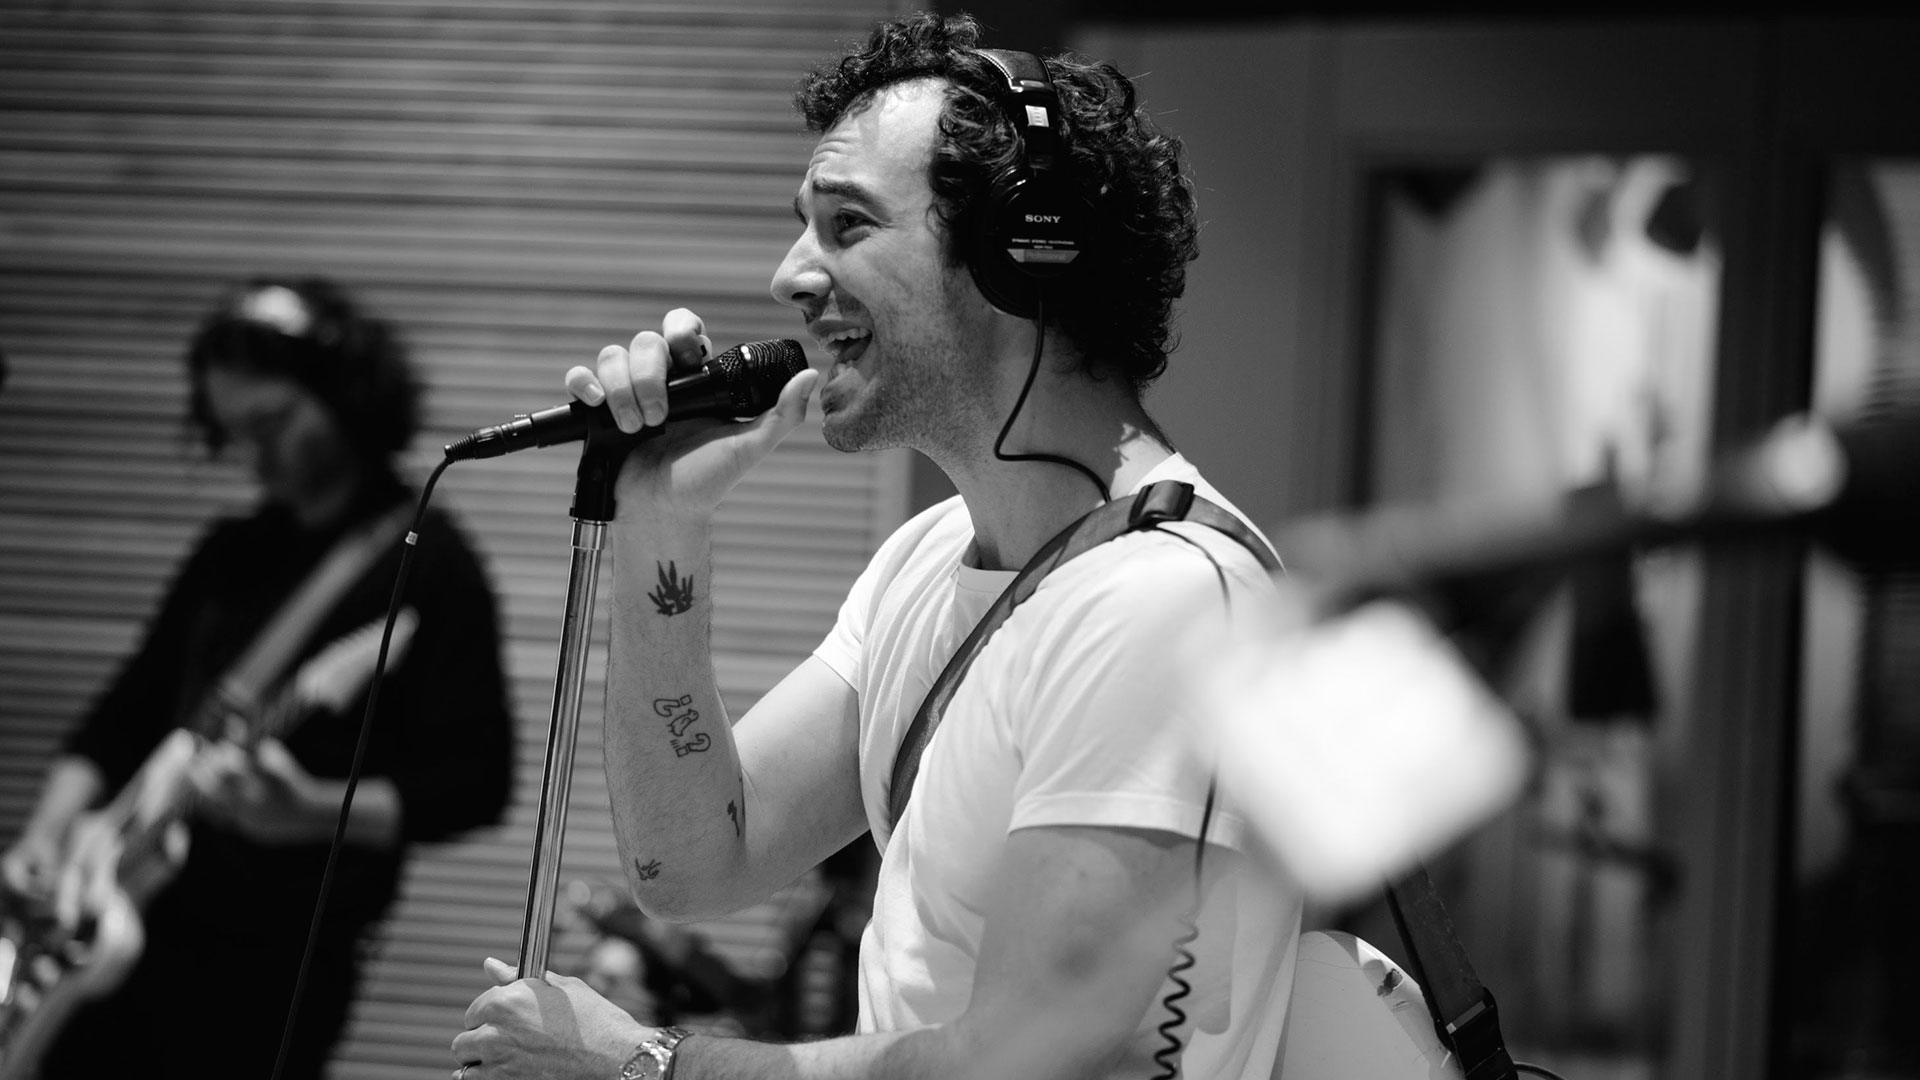 ALBERT HAMMOND JR hero asset